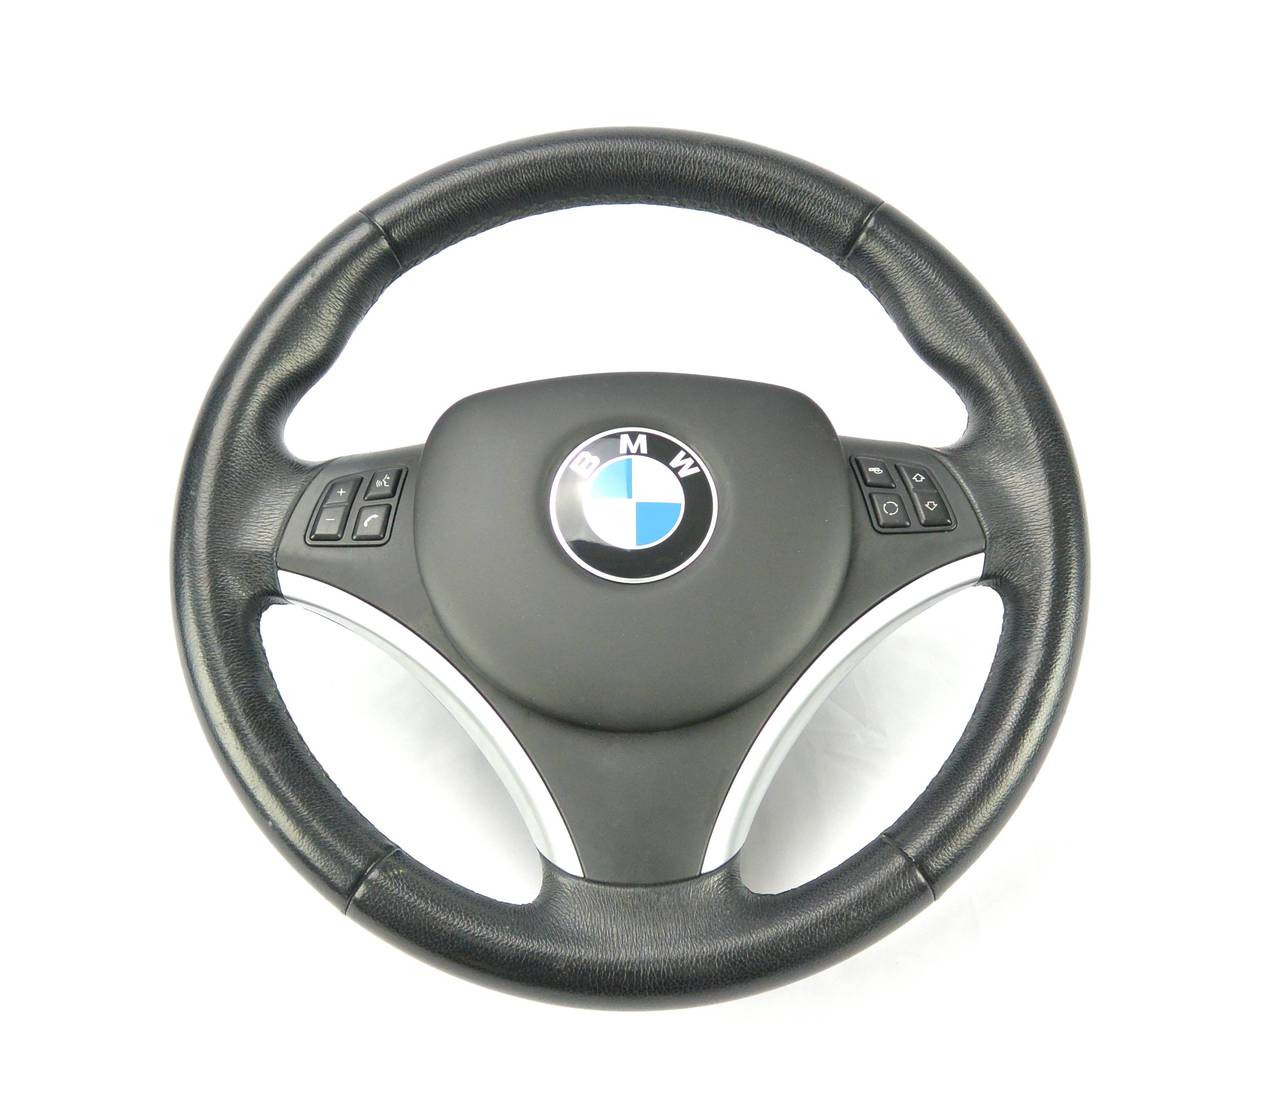 Clean factory appearance on the BMW E9X steering wheel